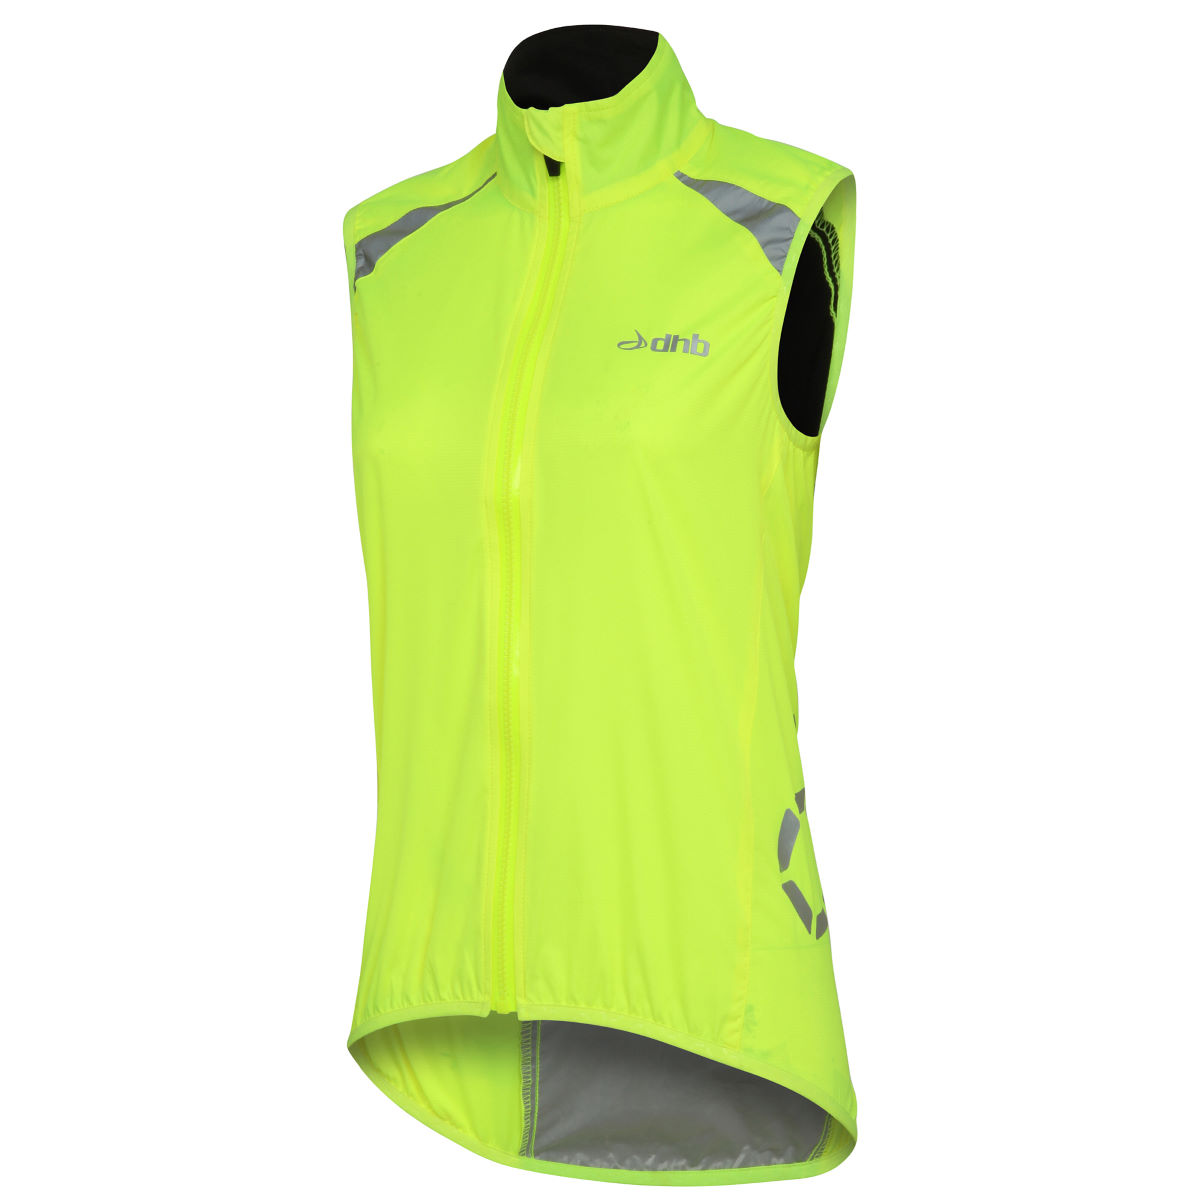 Gilet Femme dhb Flashlight (coupe-vent, sans manches) - 16 UK